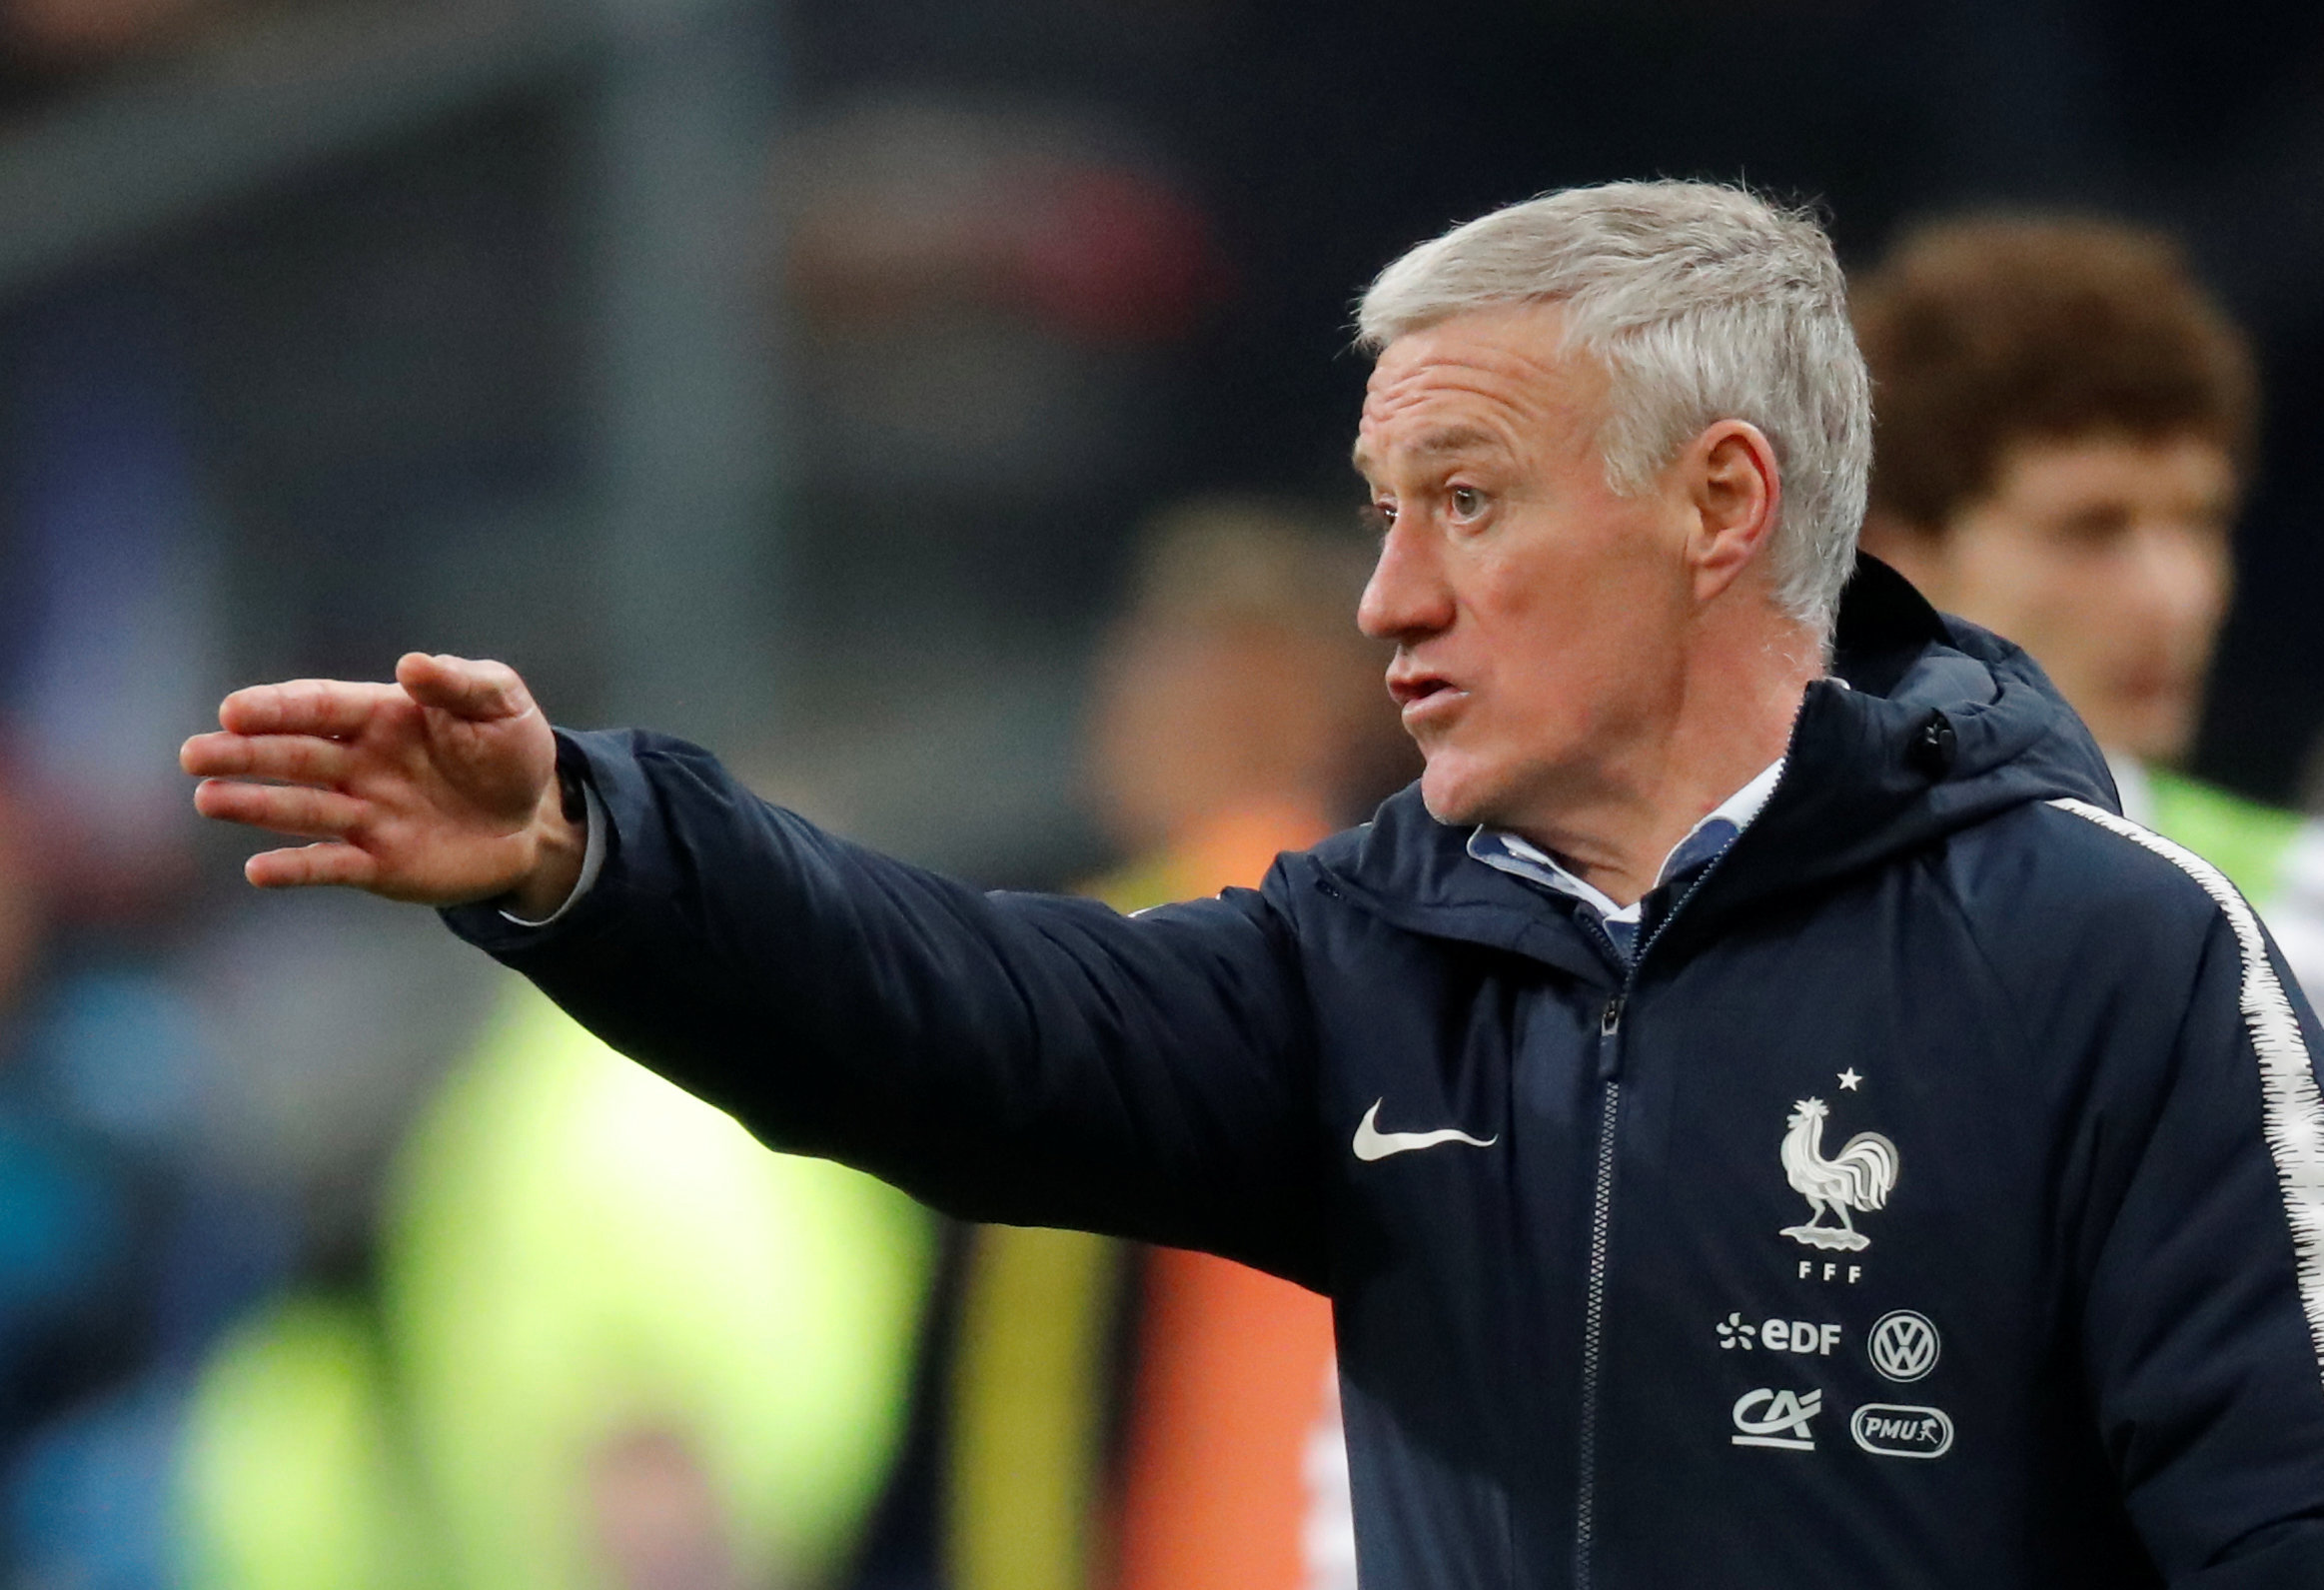 Football - Coupe du monde - Deschamps : «En seconde mi-temps, panne de courant»